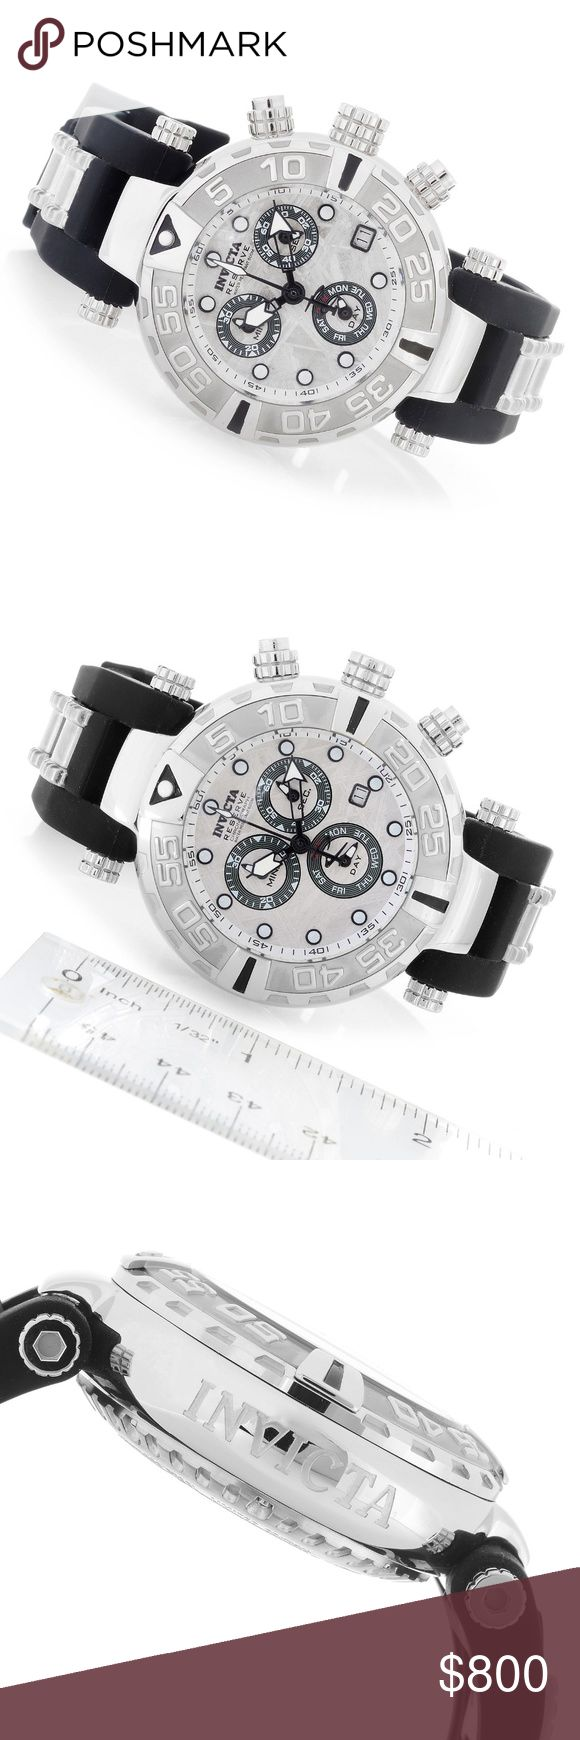 """LAST CHANCE SALE Invict Reserve Quartz Watch Invicta Reserve 38mm Subaqua Noma I Swiss Quartz Chronograph Meteorite Dial Strap Watch Watch Details: Movement Country of Origin: Switzerland  Thickness:  38mm: 15mm  47mm: 19mm  Bezel: Unidirectional Rotating  Crystal: Flame Fusion  Crown: Screw down with function pushers  Subdials: 2:00 - Perpetual Seconds, 6:00 - Day of the week and 10:00 - 30-minute  Strap: Silicone  Strap Measurements:  38mm: 8-3/4"""""""" L x 20mm W  47mm:10-1/4"""" Lx24mm W Clasp…"""